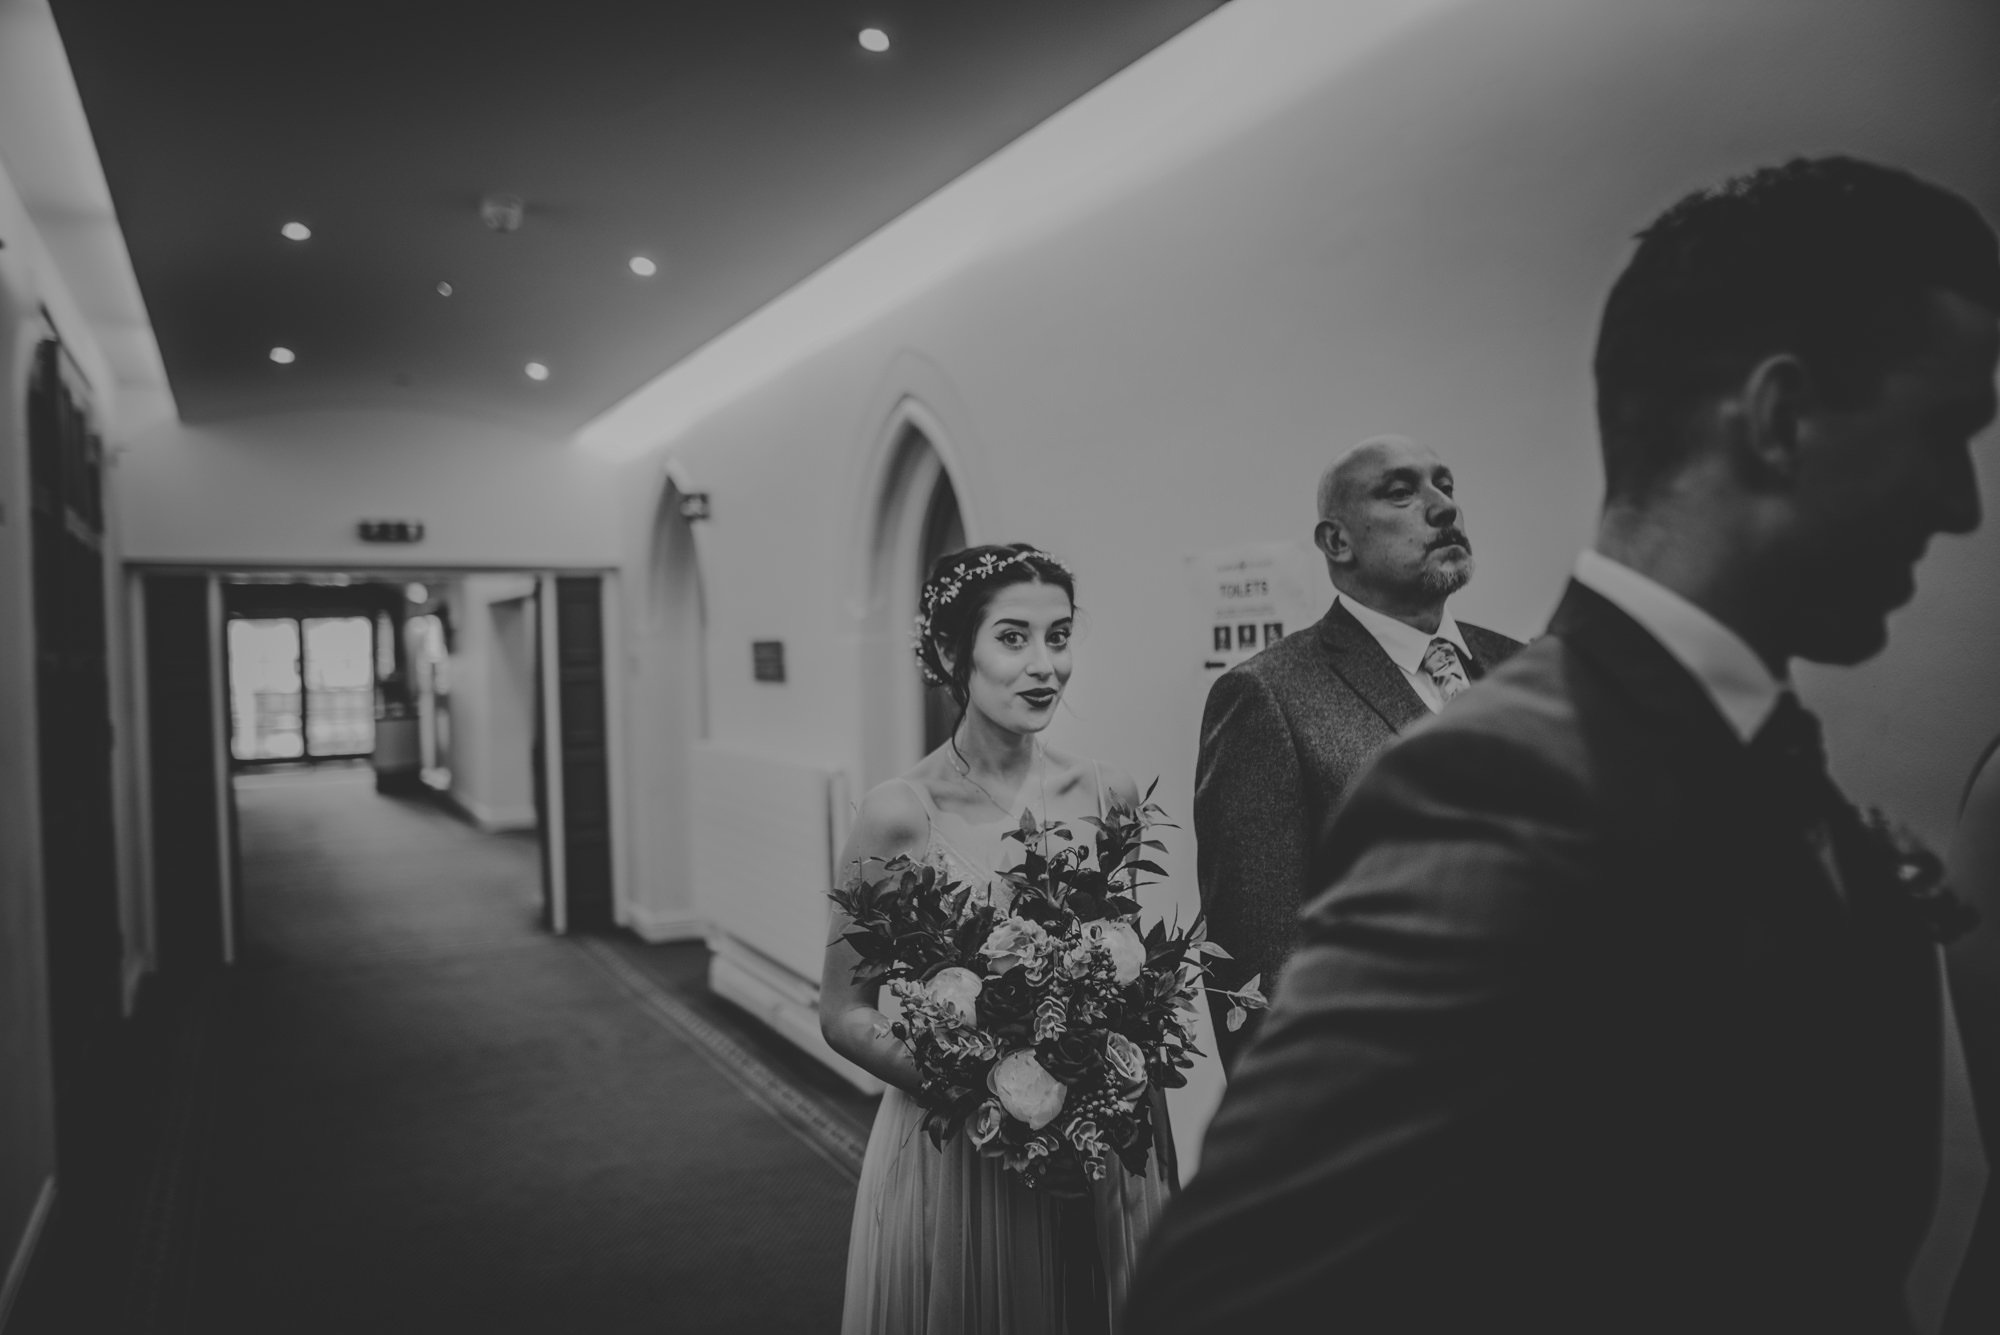 Marissa-and-Ash-Wedding-at-Winchester-Guildhall-and-The-Meade-Hall-Hampshire-Manu-Mendoza-Wedding-Photography-250.jpg